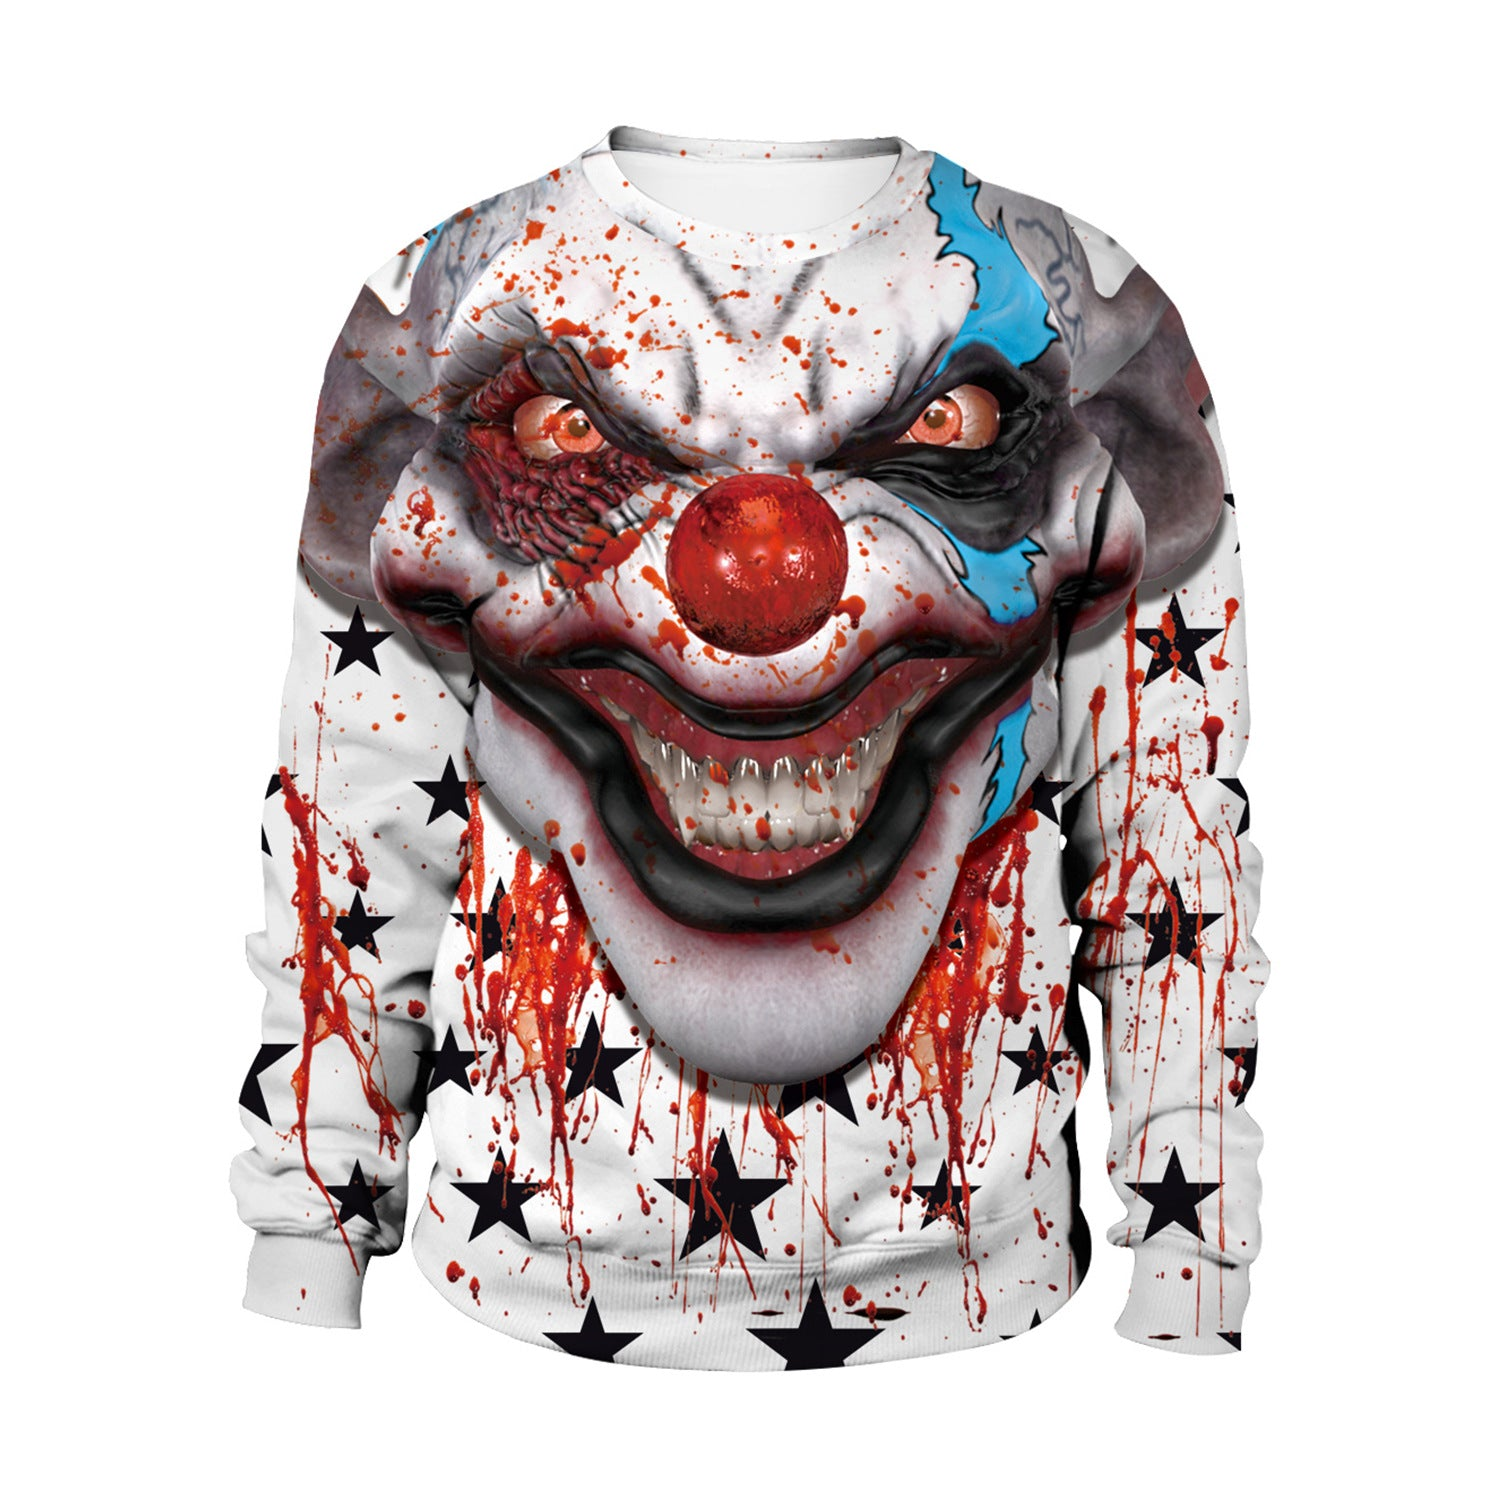 Clown Digital Print Couple Sweatshirt Halloween Night Party Costume